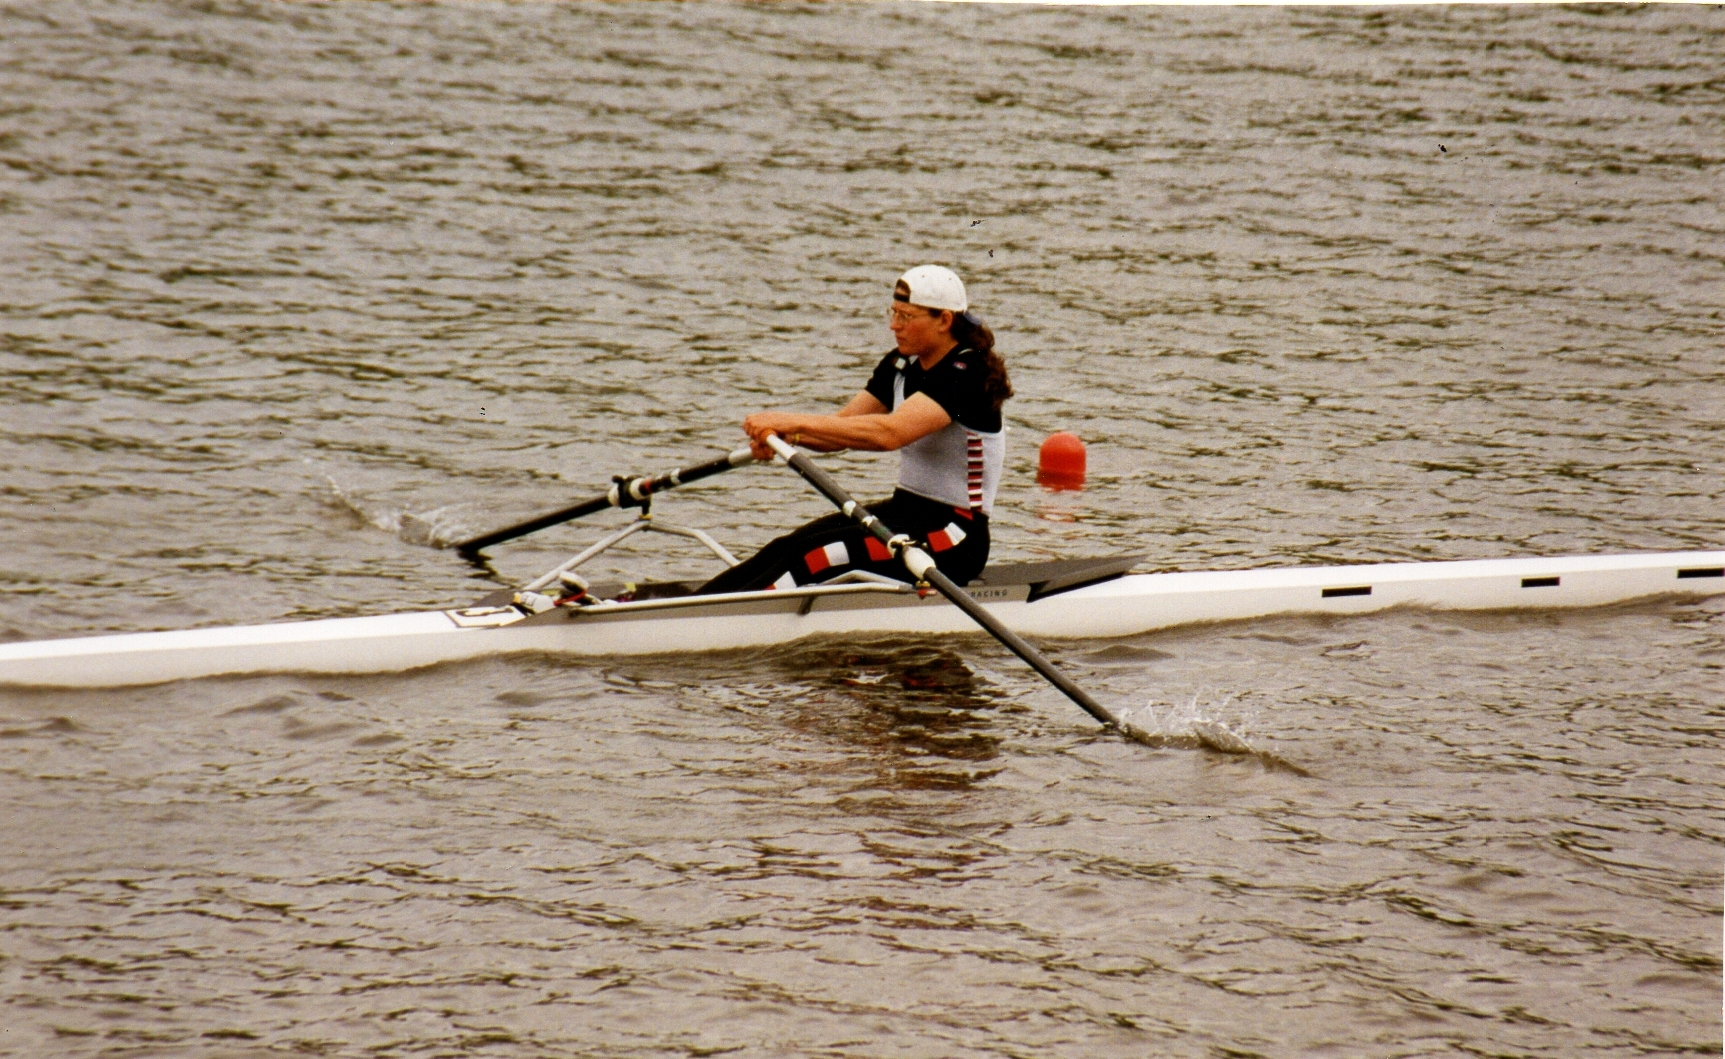 Woman sculler in Thames RC kit